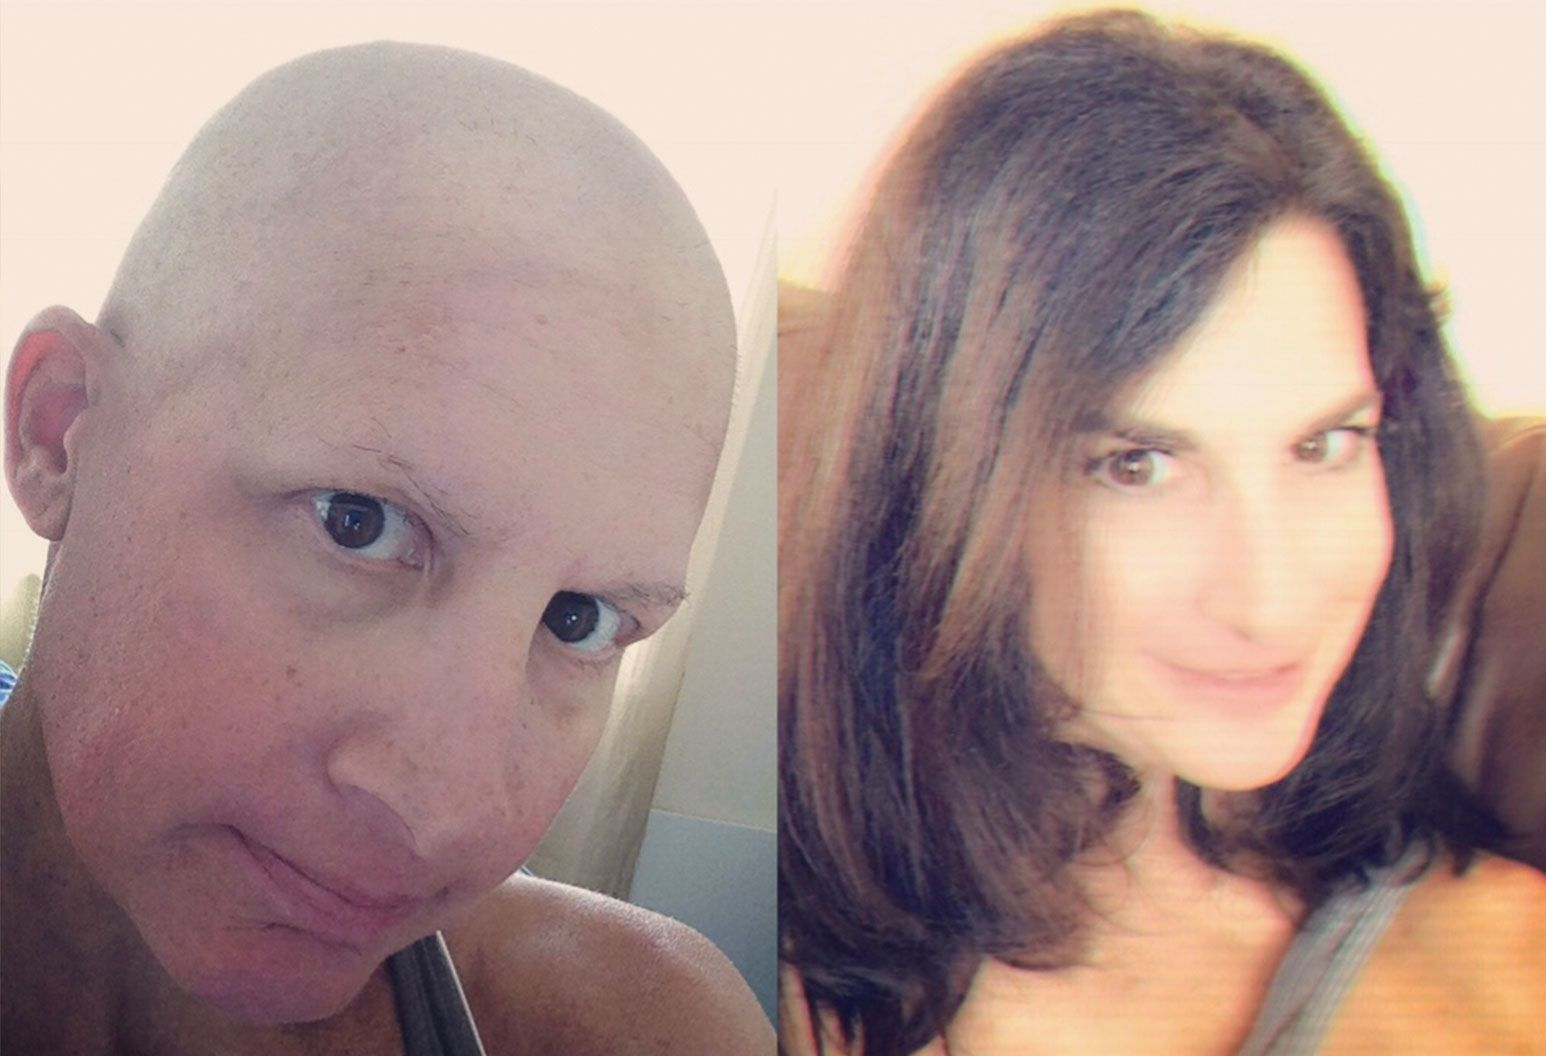 Side by side comparison of a woman with a shaved head and less eyebrows vs. a photo of her with long brunette hair.